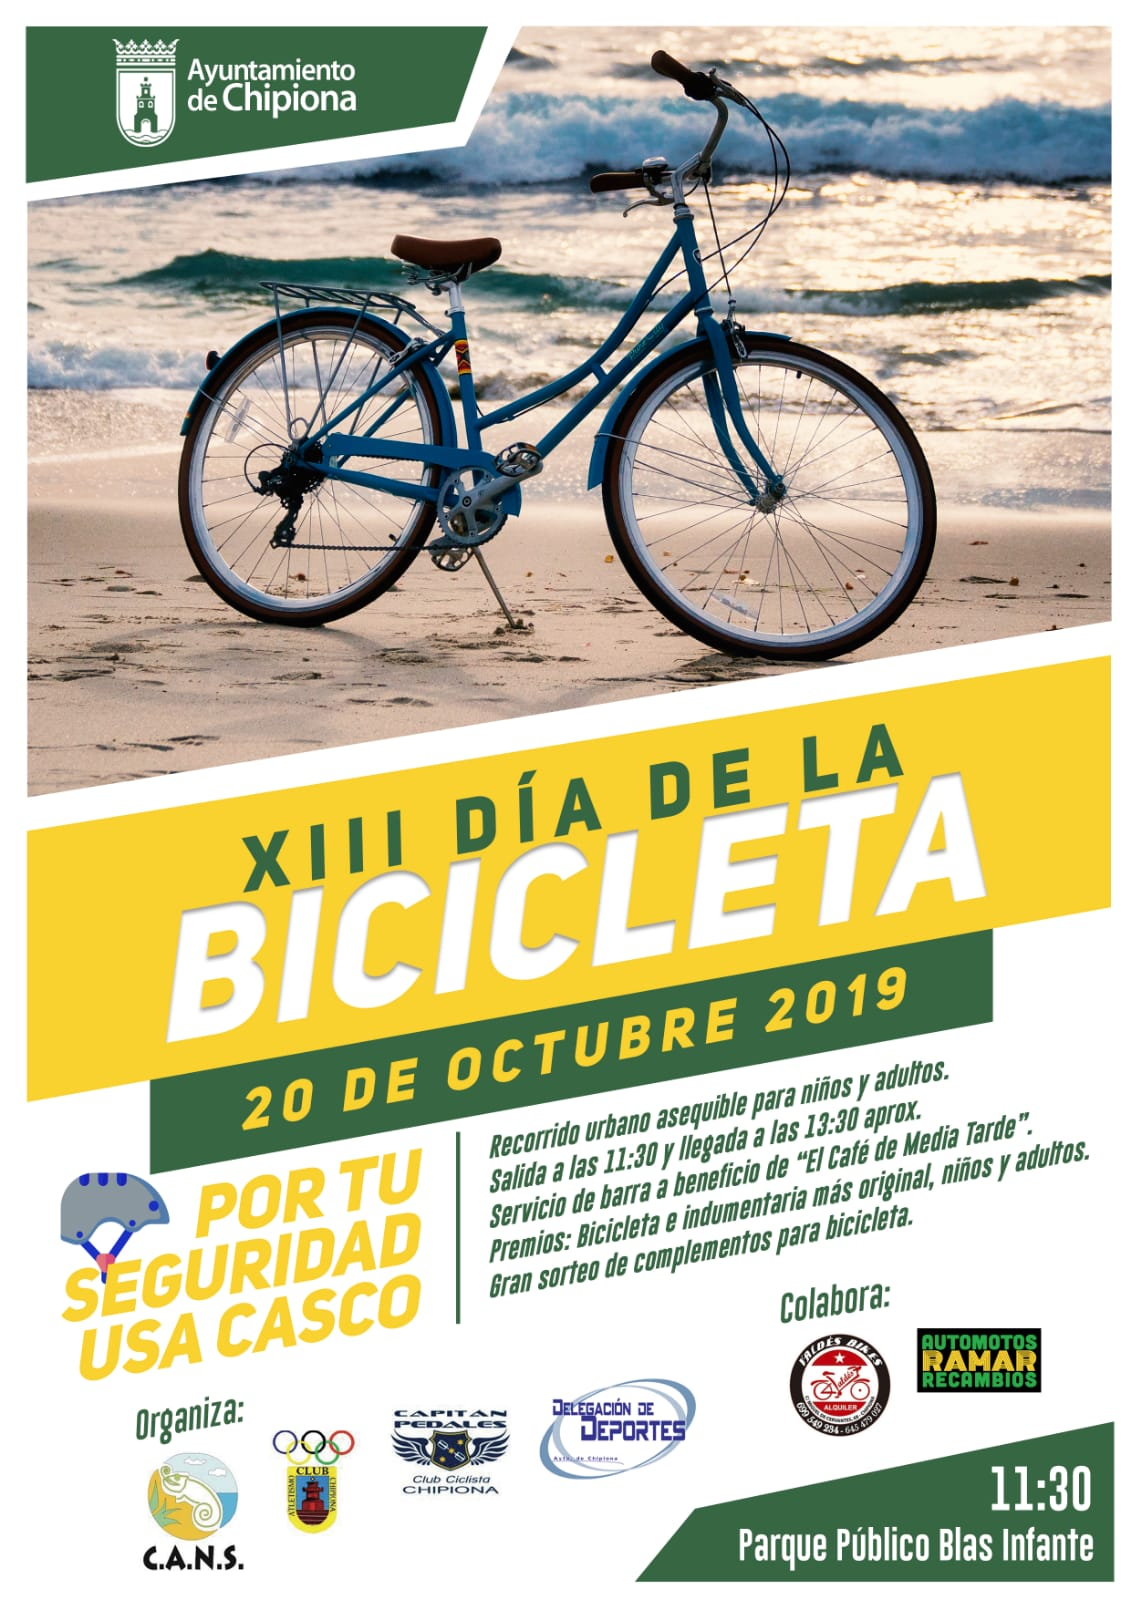 sites/default/files/2019_AGENDA/deportes/DIA_DE_LA_BICICLETA_CHIPIONA.jpg